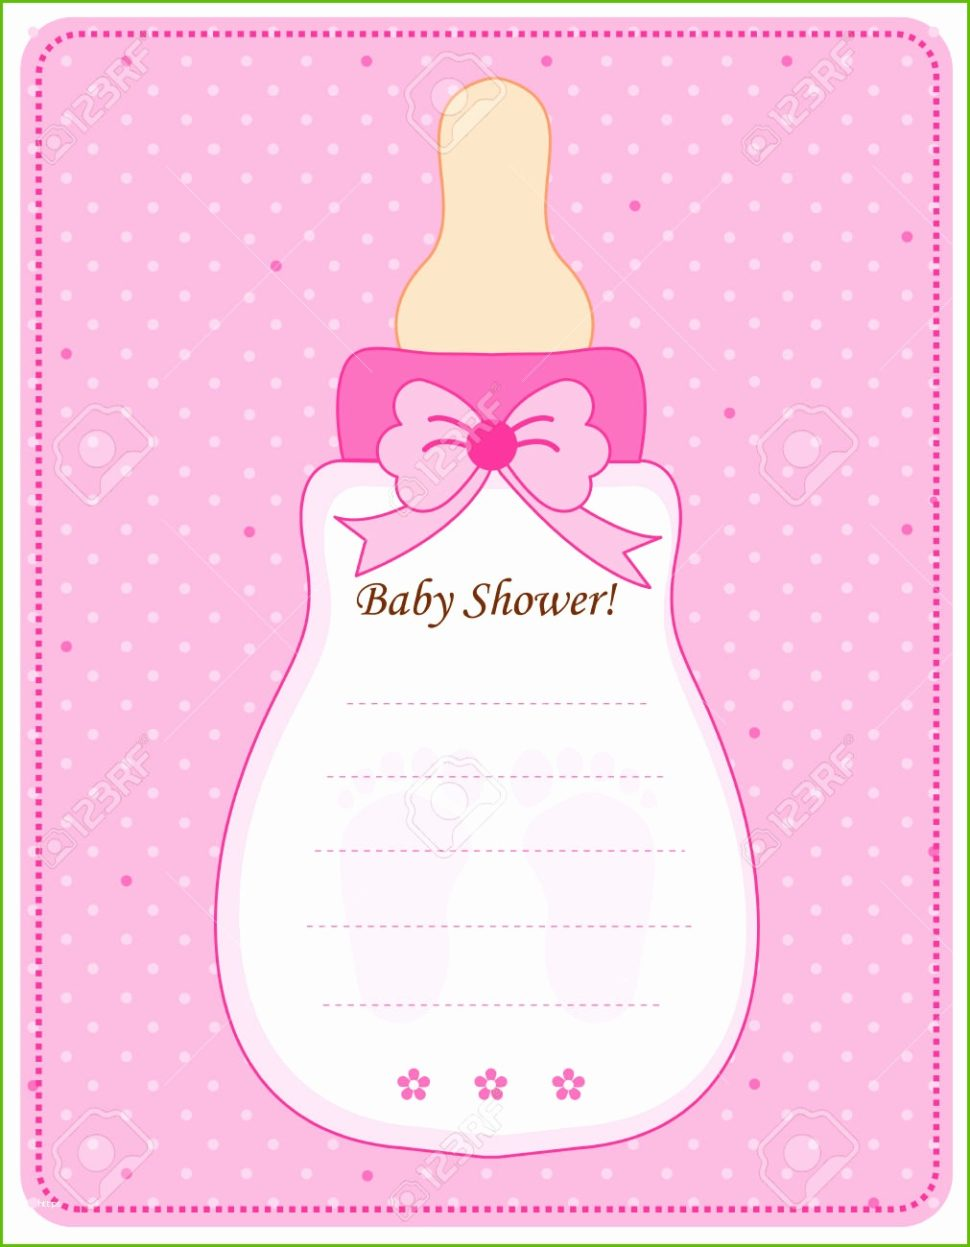 Medium Size of Baby Shower:sturdy Baby Shower Invitation Template Image Concepts Baby Shower Templates Free Printable Amazing Baby Shower Invitation Baby Shower Templates Free Printable Admirable Baby Shower Invitation For Girls Template Invitation